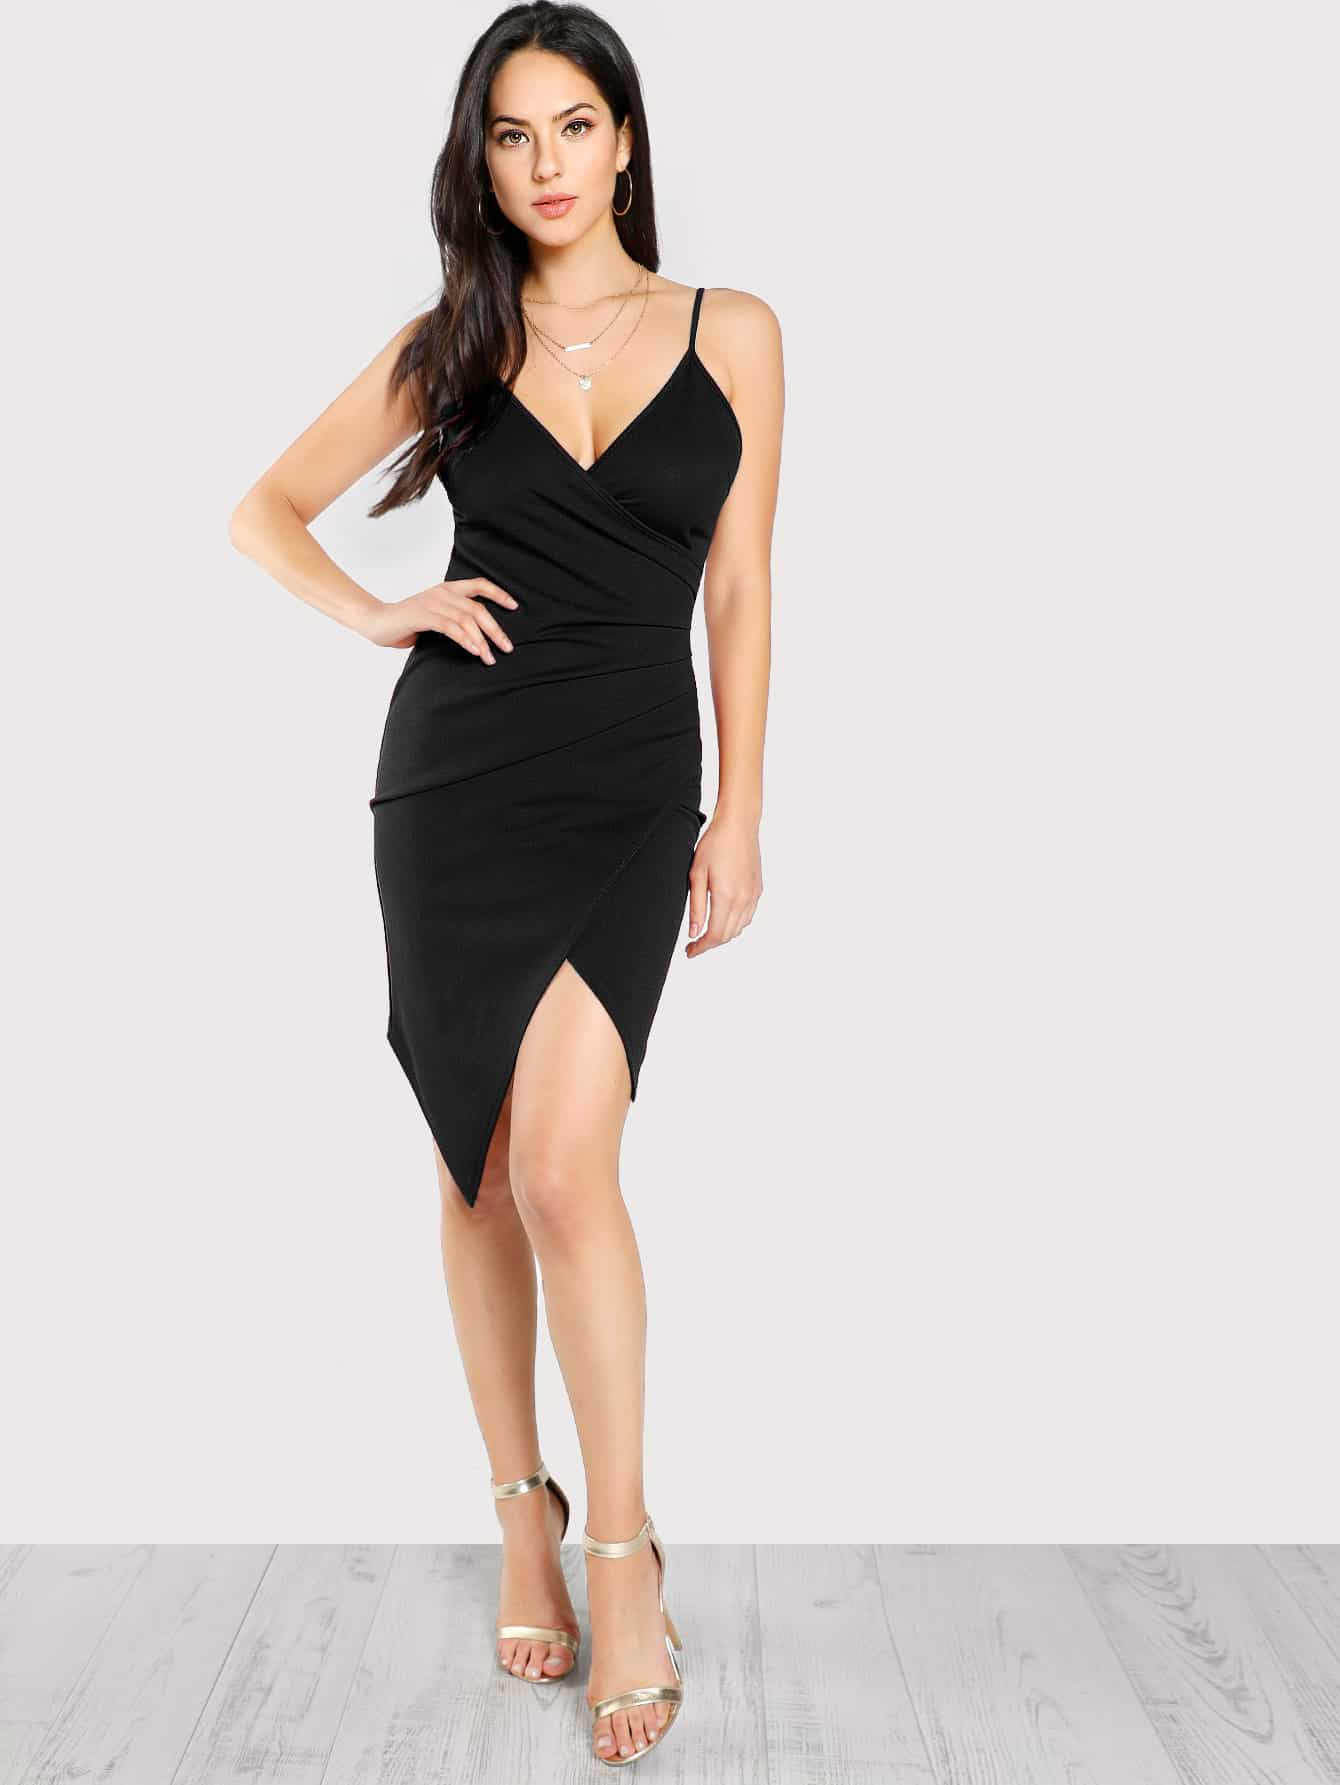 Ruched Overlap Form Fitting Cami Dress ruched overlap cami dress